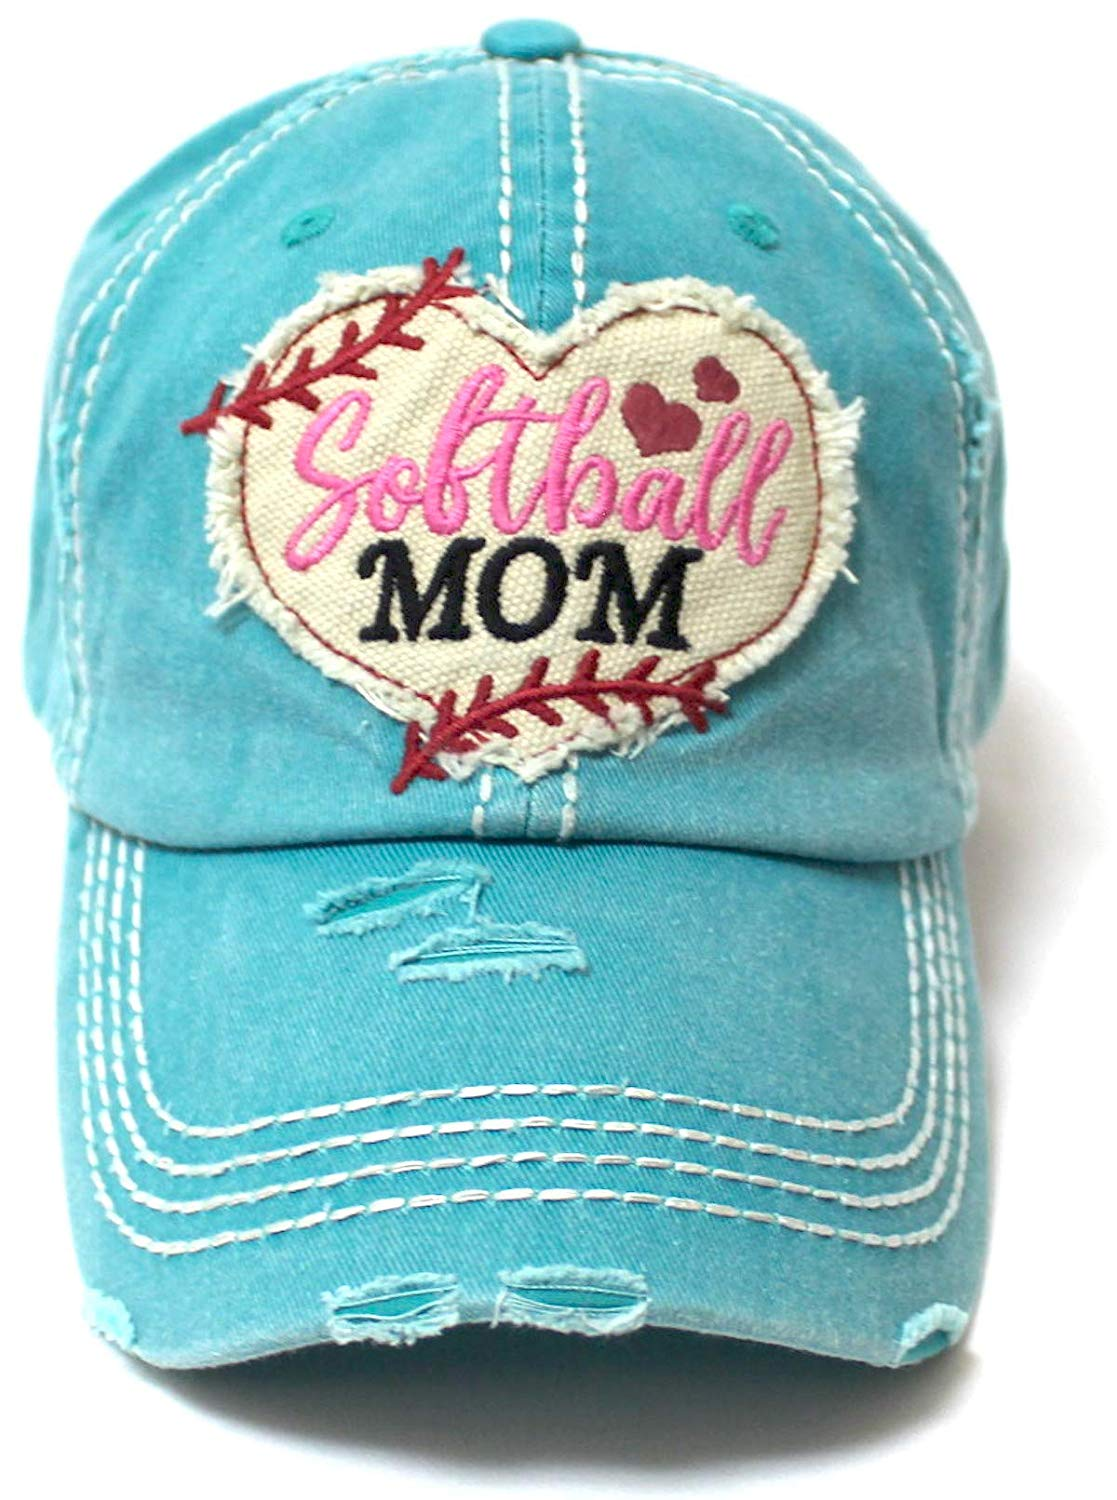 Women's Softball Mom Baseball Cap Heart Softball Patch Embroidery, Turquoise - Caps 'N Vintage